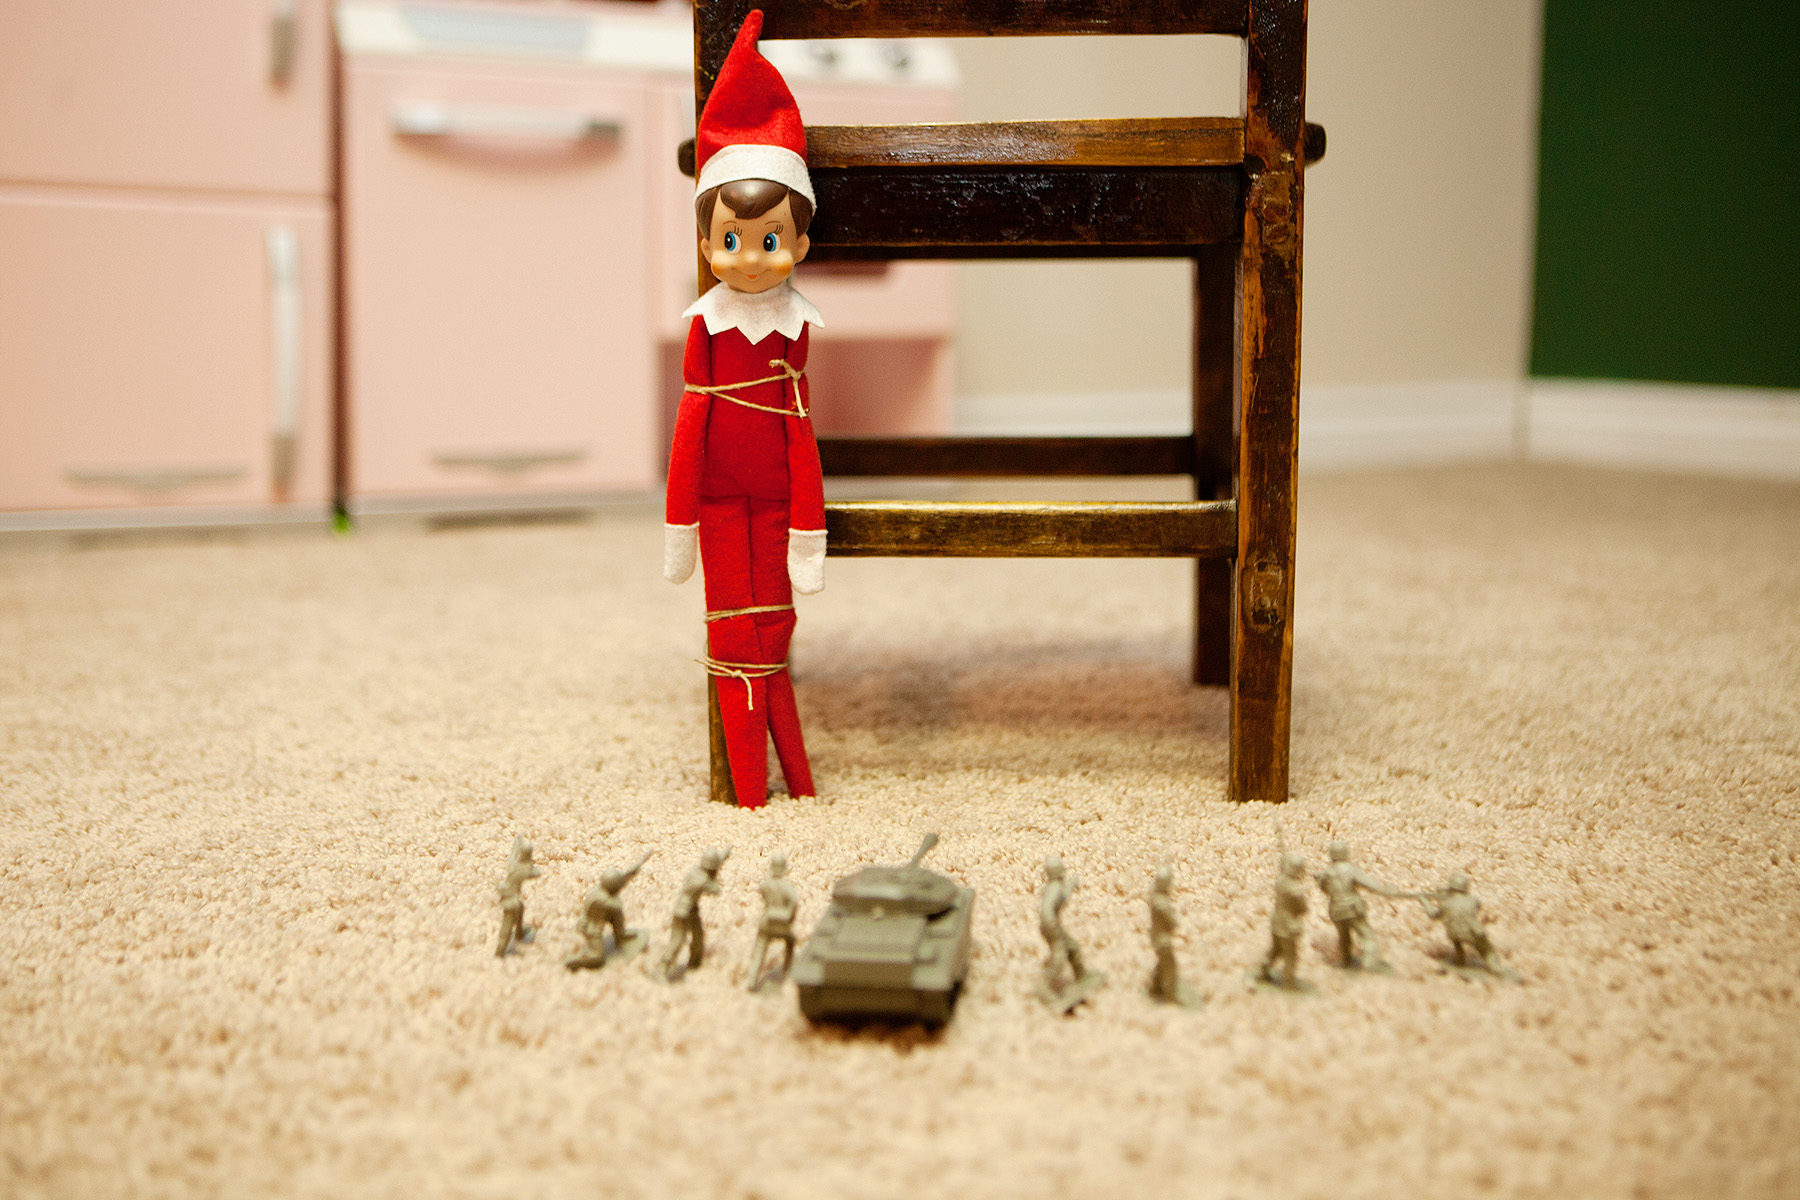 Elf has a little run-in with the army men.